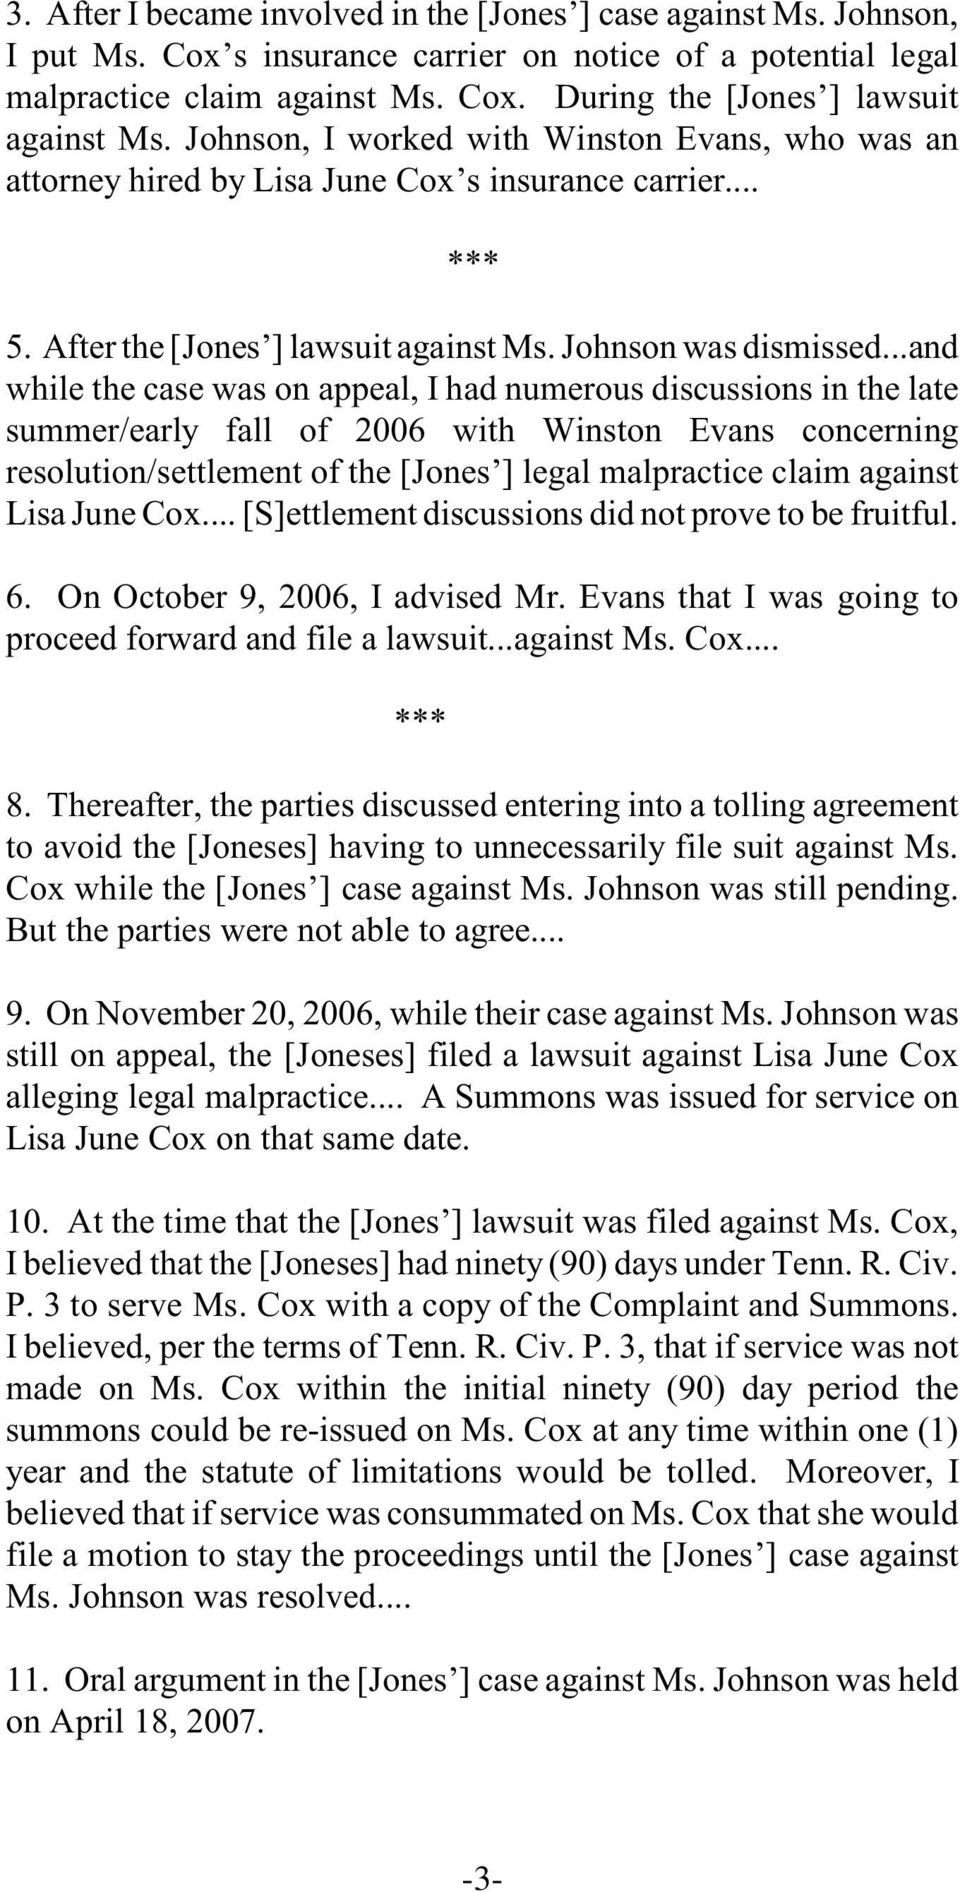 ..and while the case was on appeal, I had numerous discussions in the late summer/early fall of 2006 with Winston Evans concerning resolution/settlement of the [Jones ] legal malpractice claim